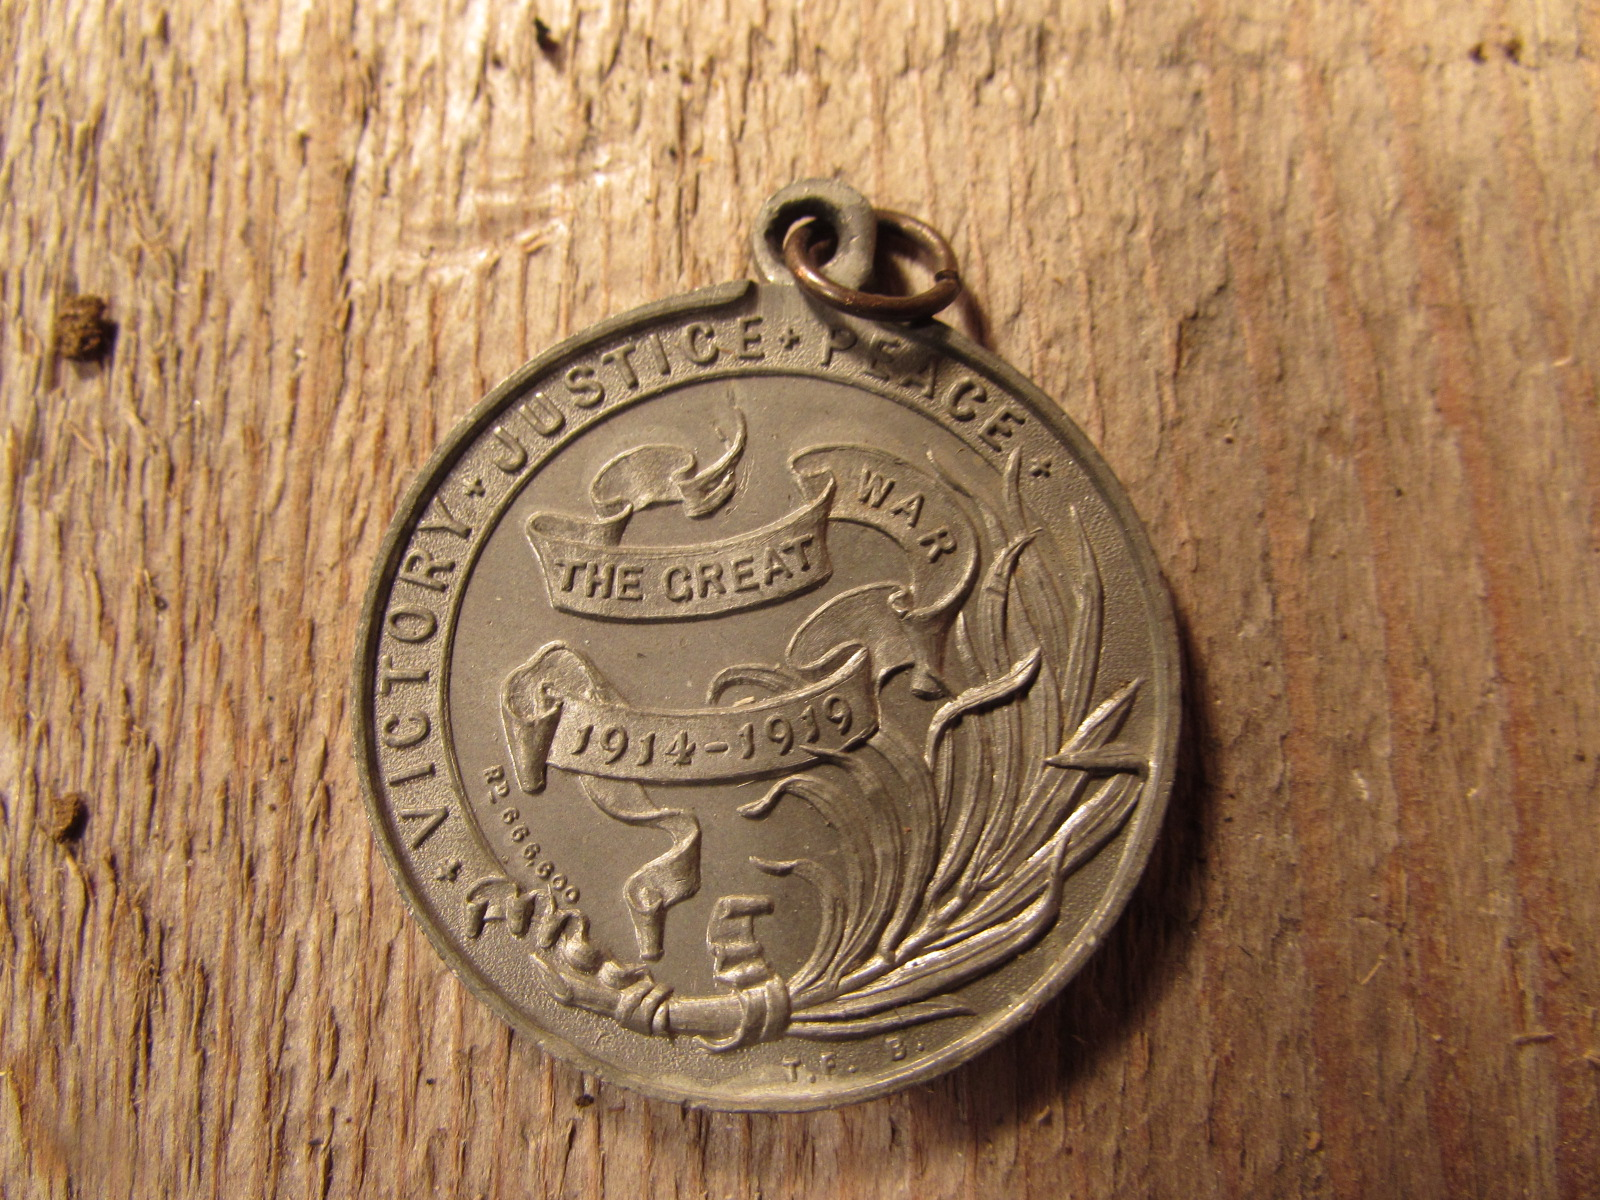 Peace award 1914-19 commemorative medal